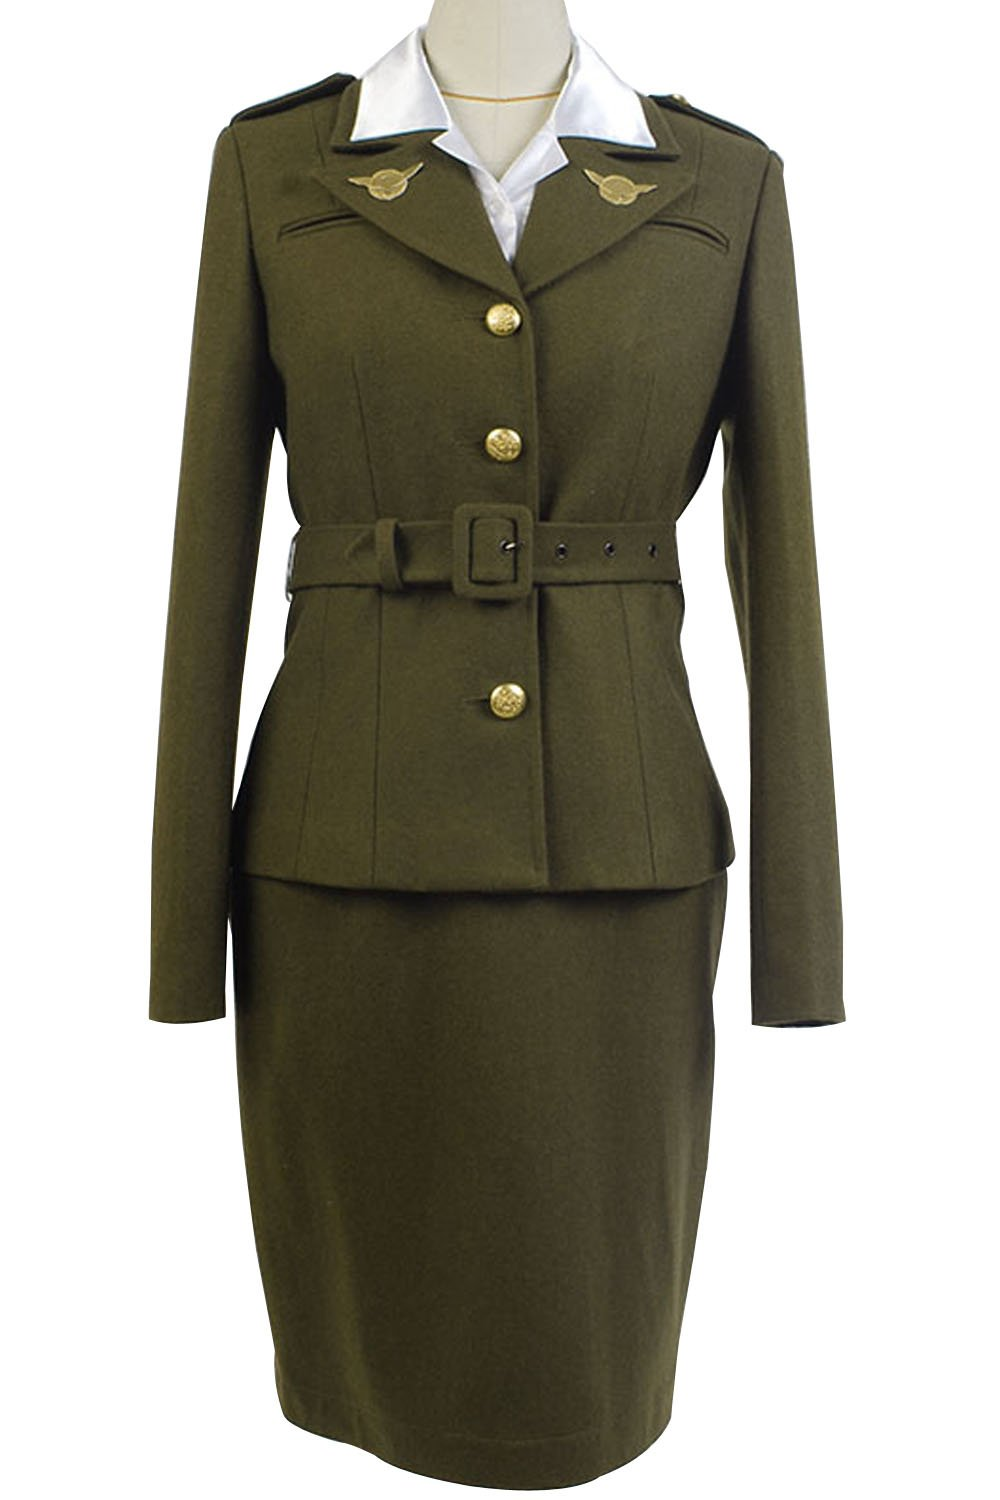 Sidnor Women's Officer Margaret/Peggy Carter Dress Cosplay Costume Uniform Suit by Sidnor